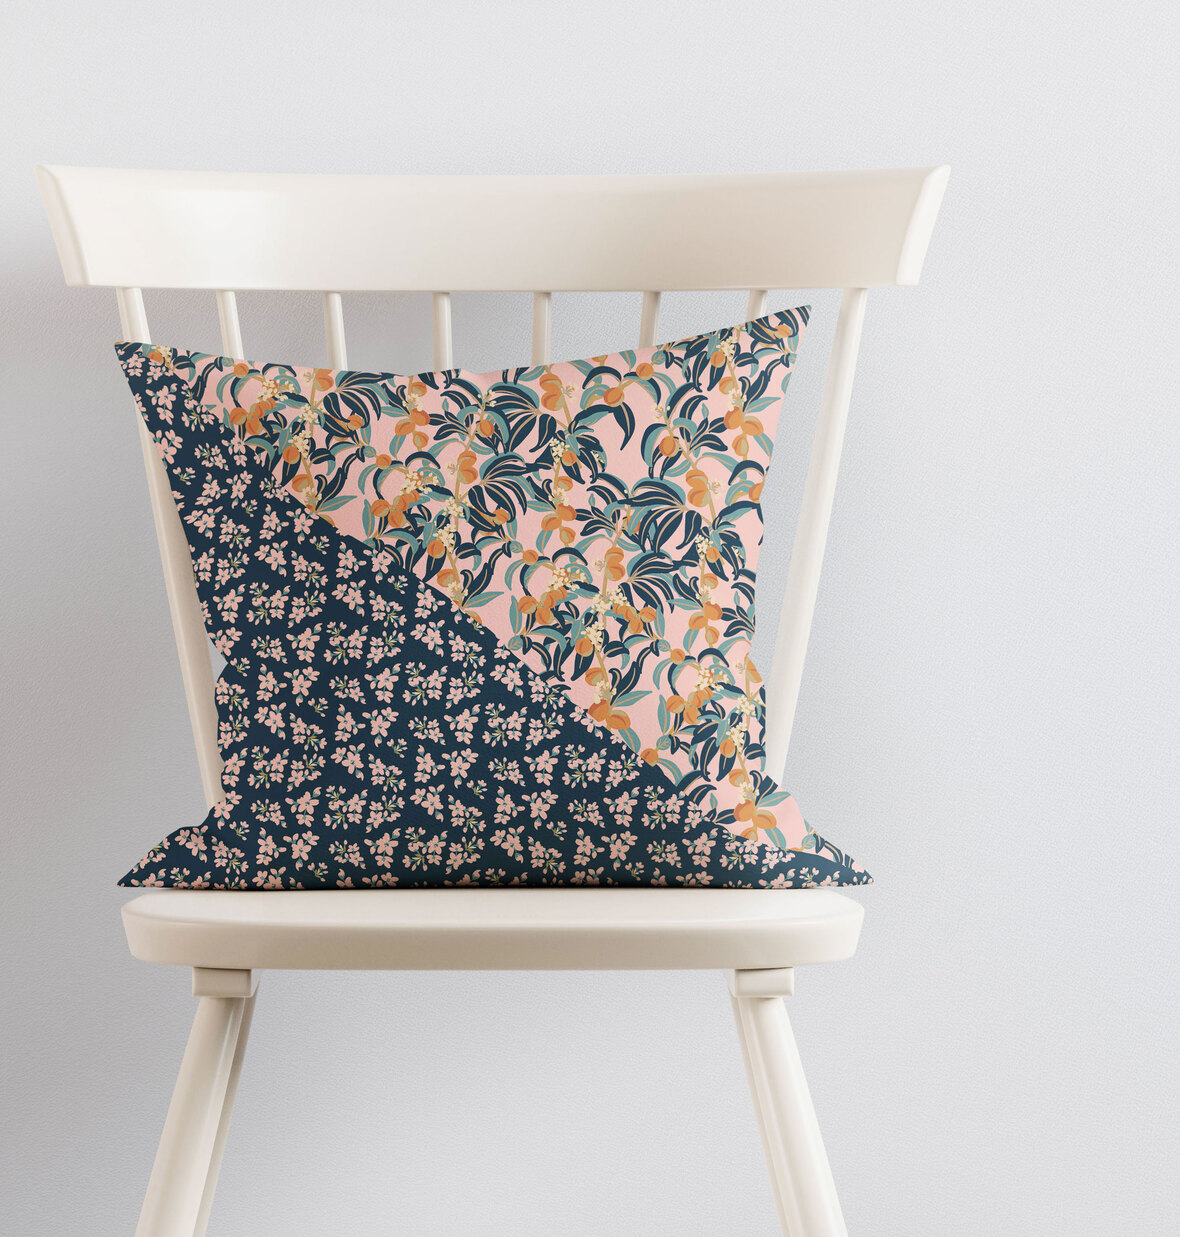 Pillow-on-Ivory-Chair-10